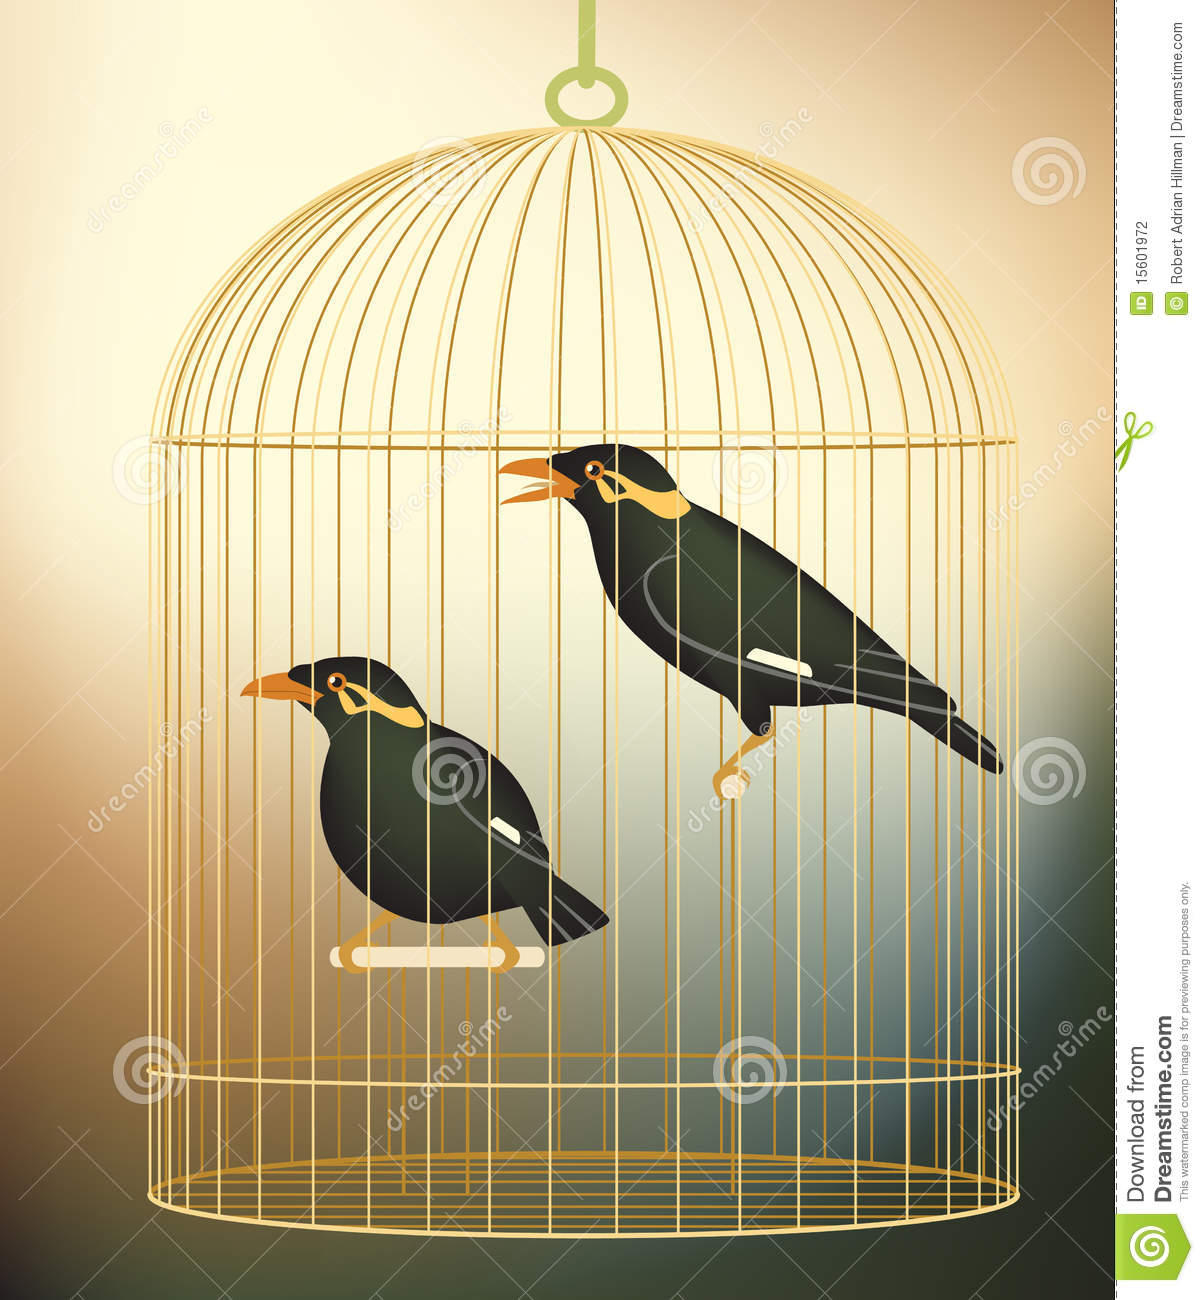 Myna Cartoons, Illustrations & Vector Stock Images - 28 ... - photo#18